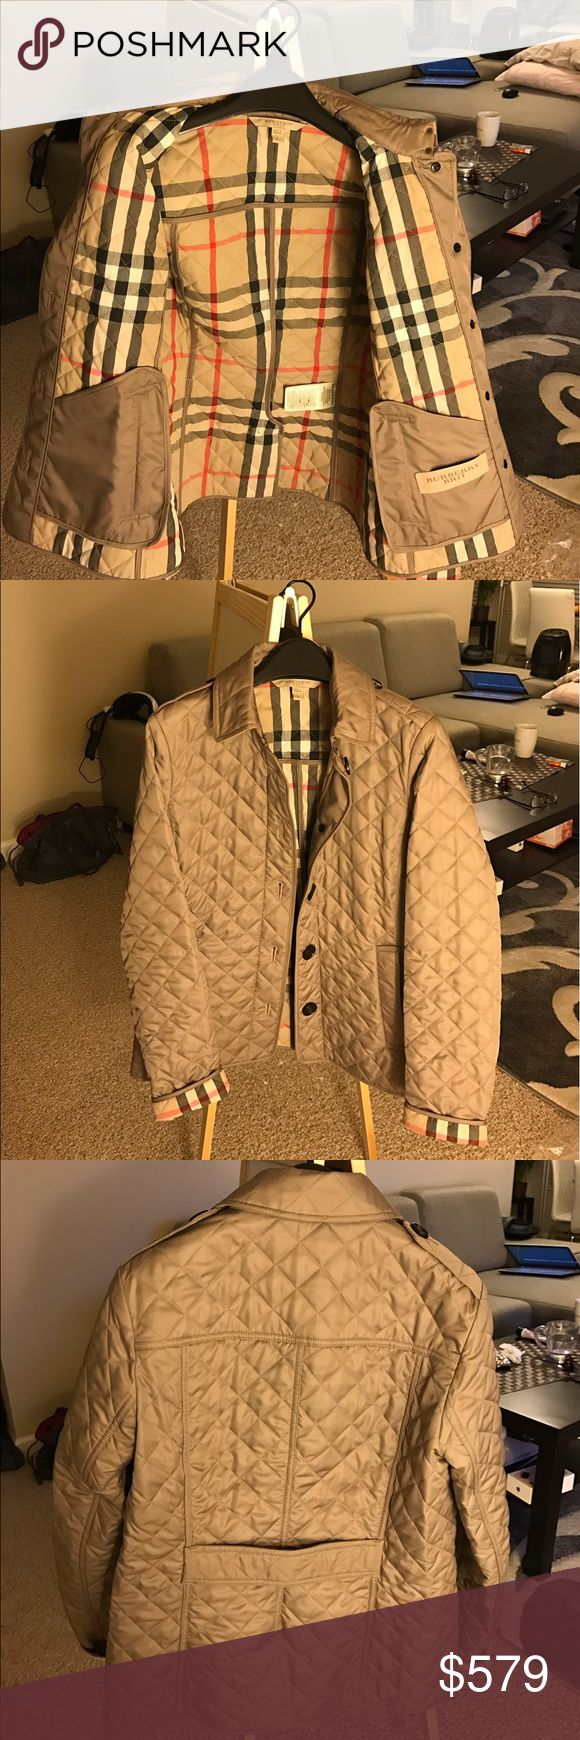 Burberry Brit Ashurst quilted jacket Only worn twice, like new with no stains or damage. Includes original tag unattached, plastic cover printed Burberry on it, and 2 extra buttons (a large one for the front, a smaller one for the buttons on the shoulders). 100% authentic. Sleeves can be rolled up to show the classic Burberry check pattern. Selling because lost weight and fits kinda loose on me now. Will accept $515 on Ⓜ️ercari and e🅱️ay or $460 on ♈️inted. Burberry Jackets & Coats